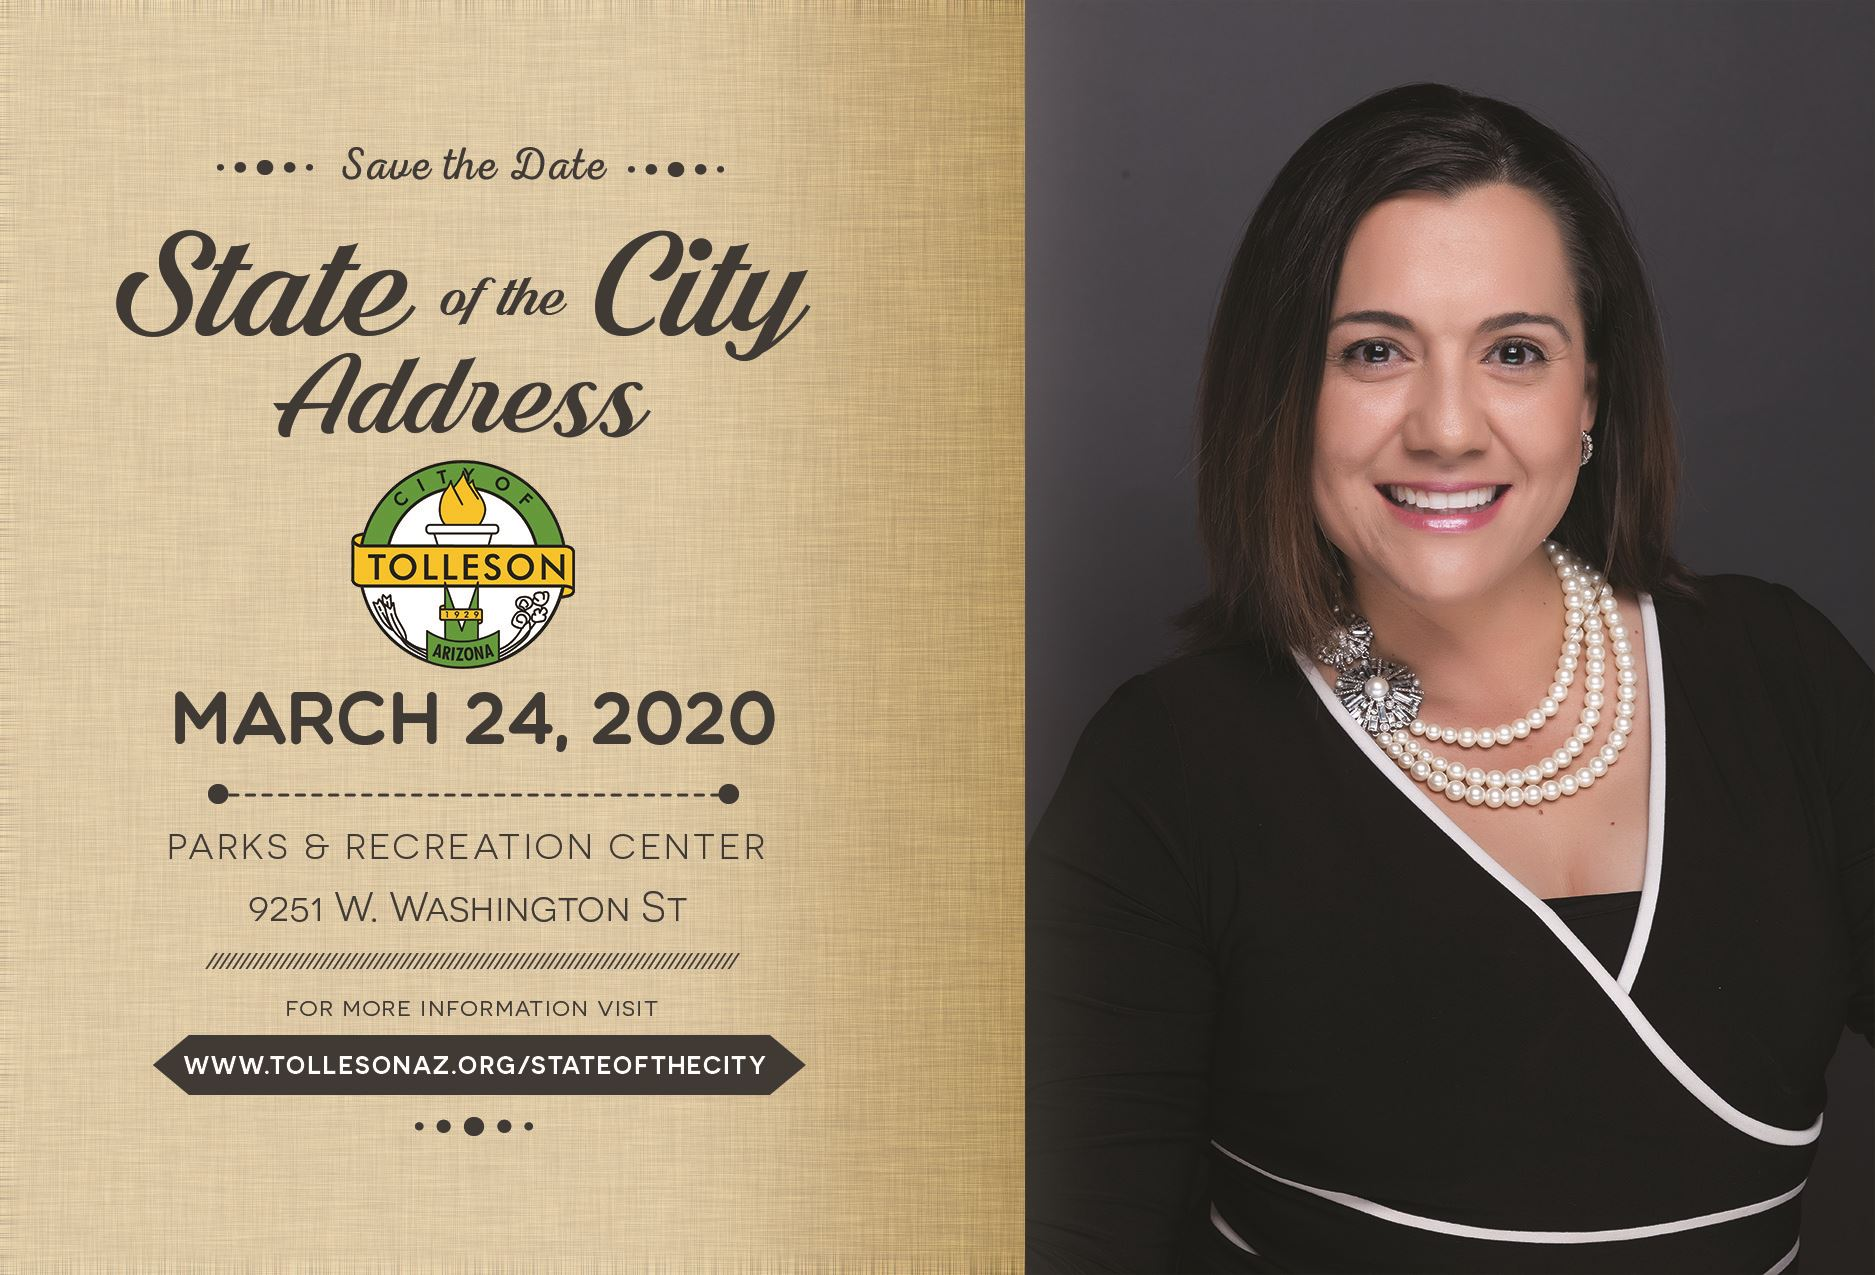 Save the Date - State of the City 2020